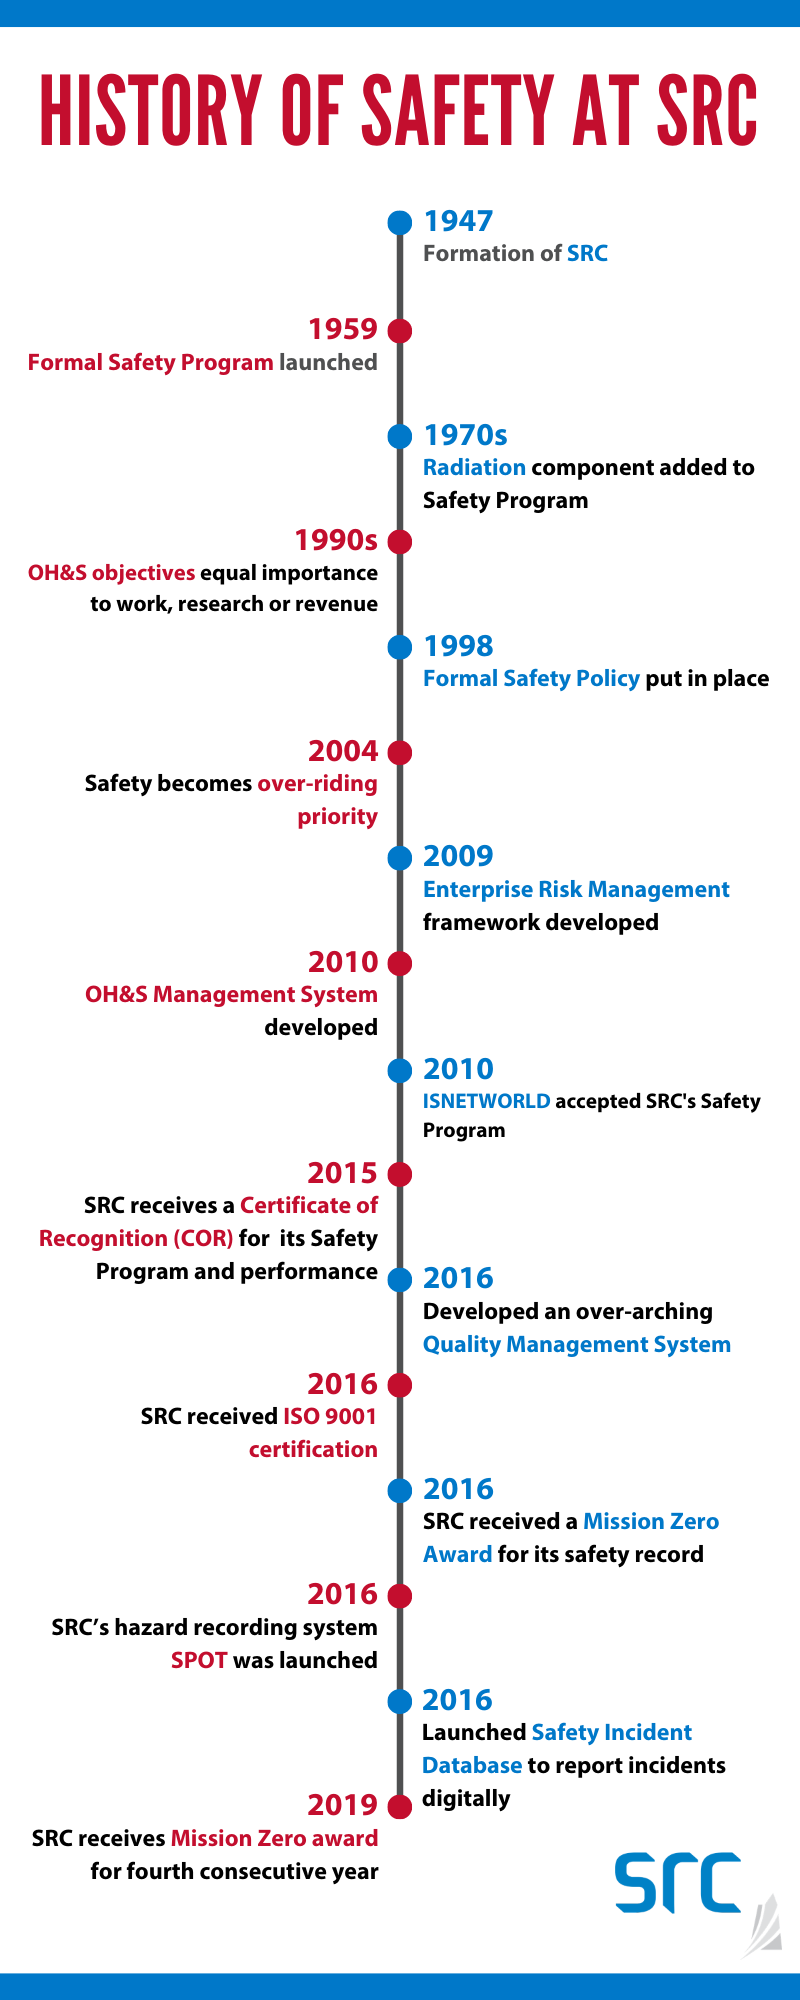 historical timeline of safety program at src